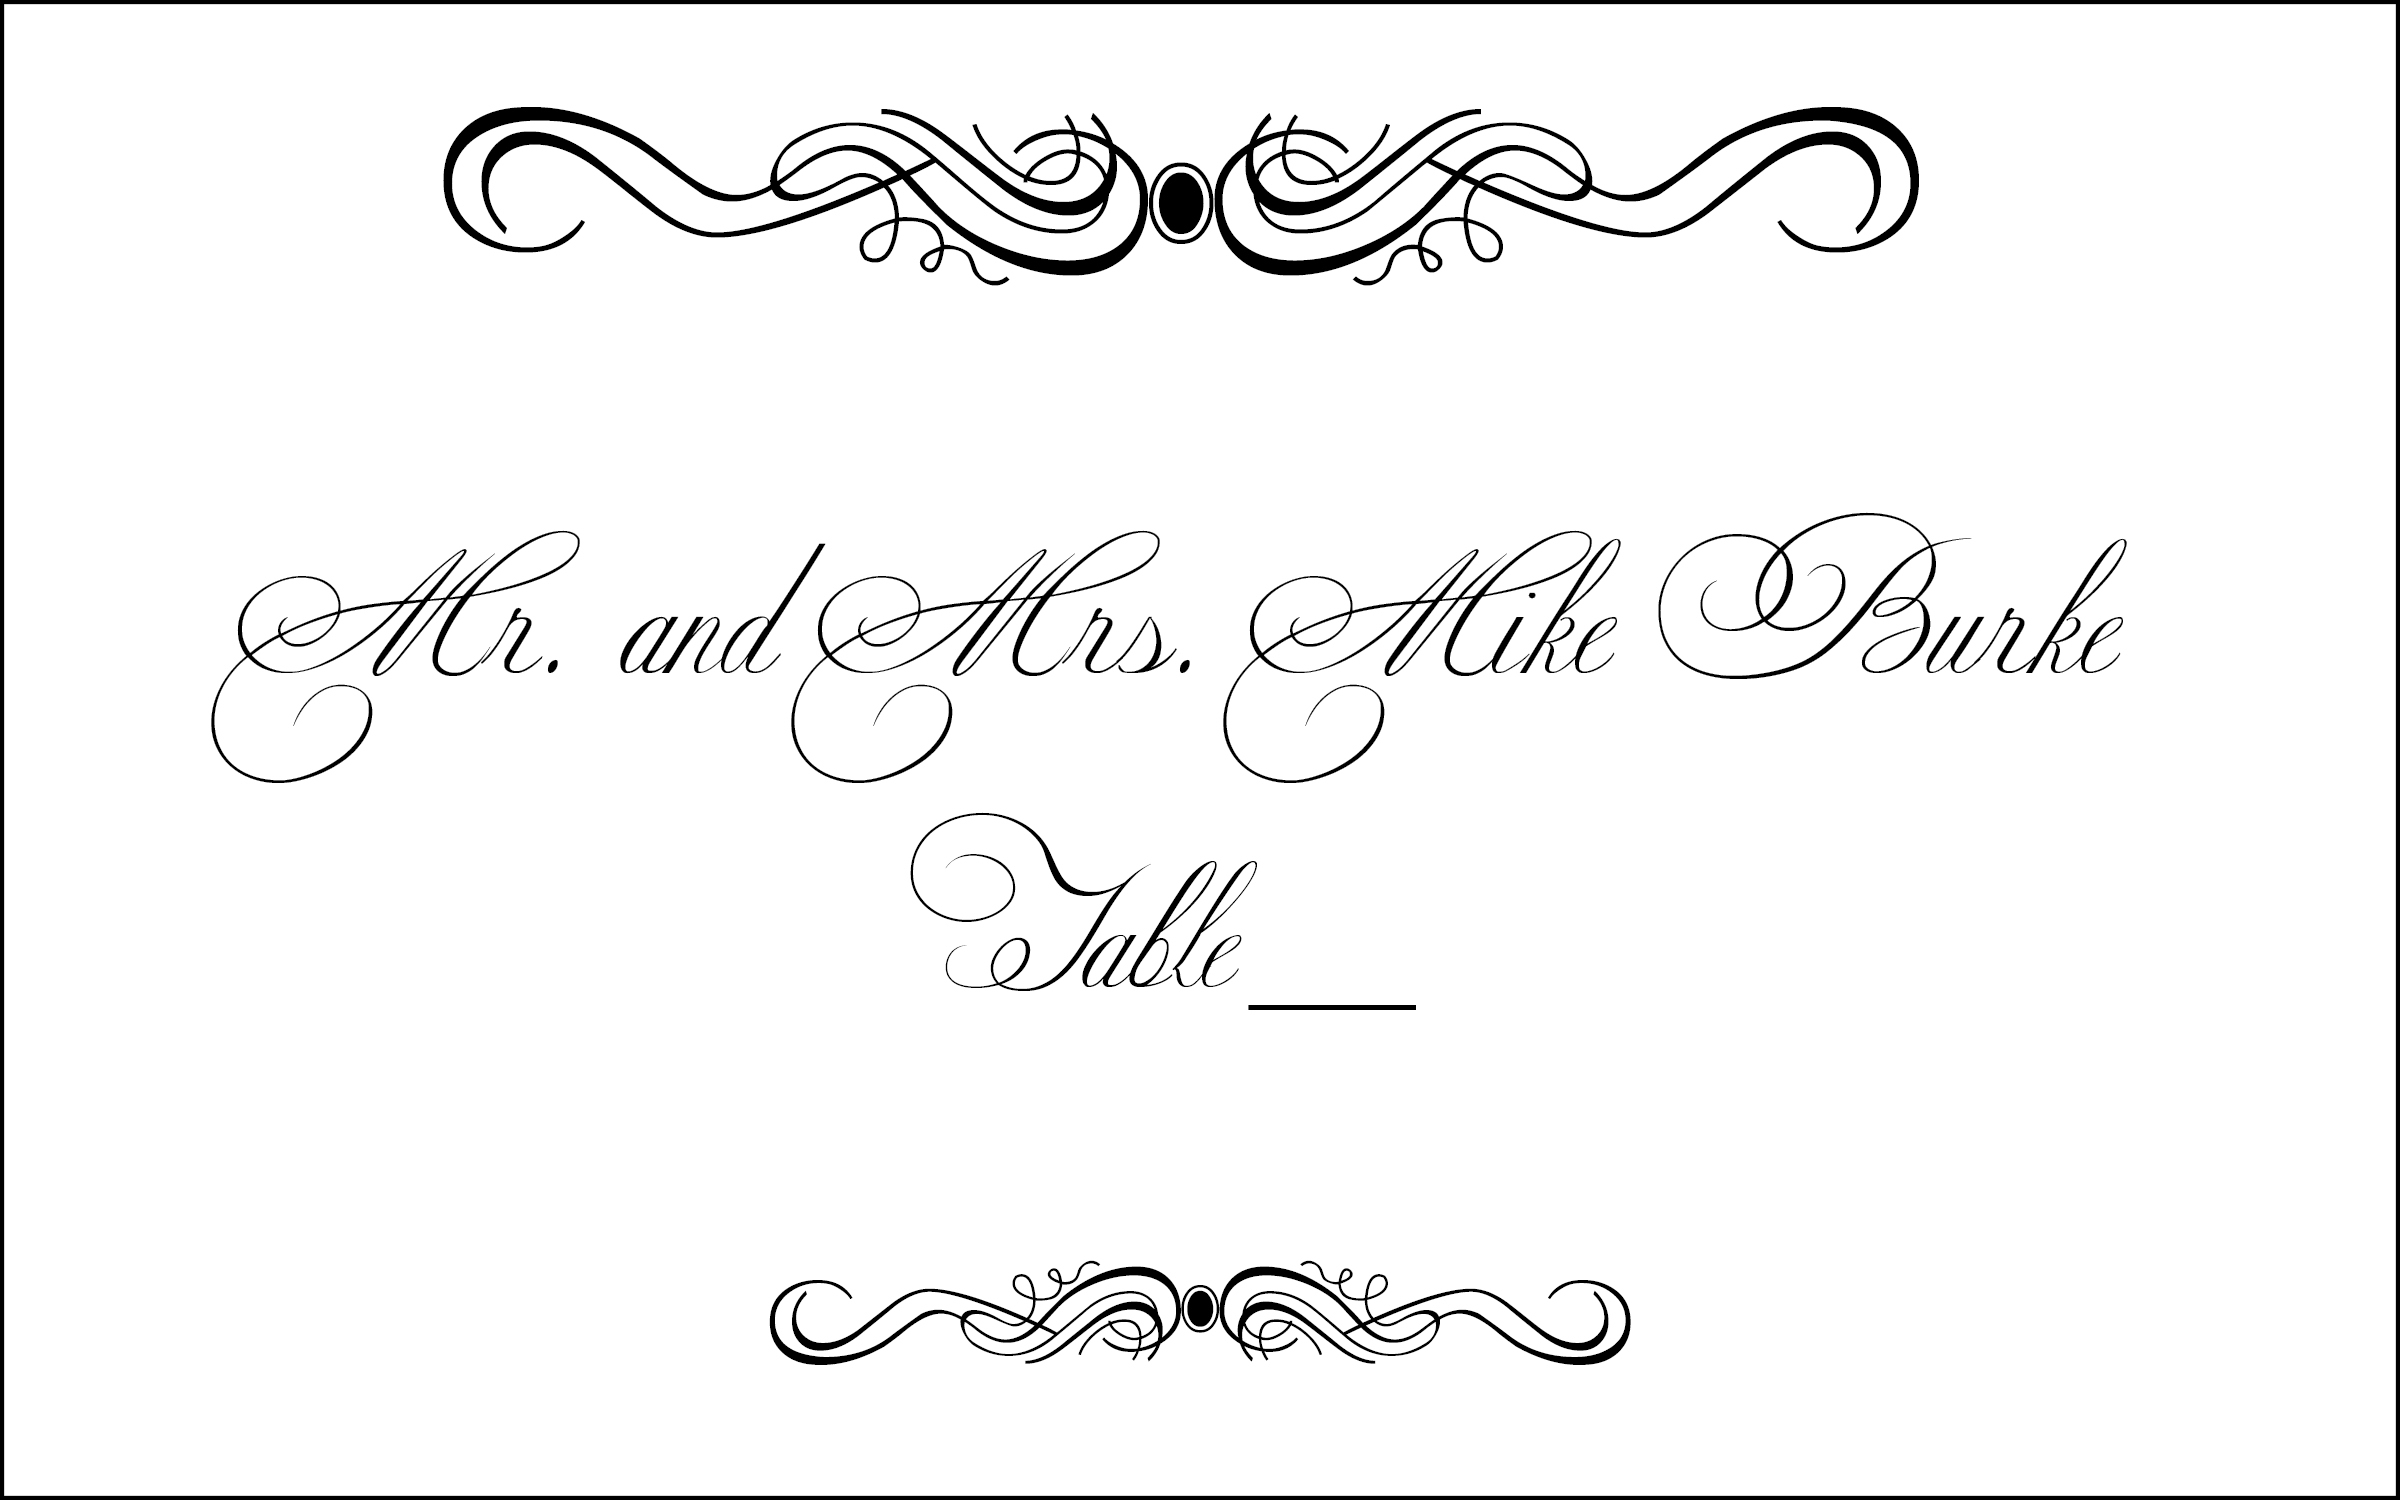 Card clipart wedding. Place